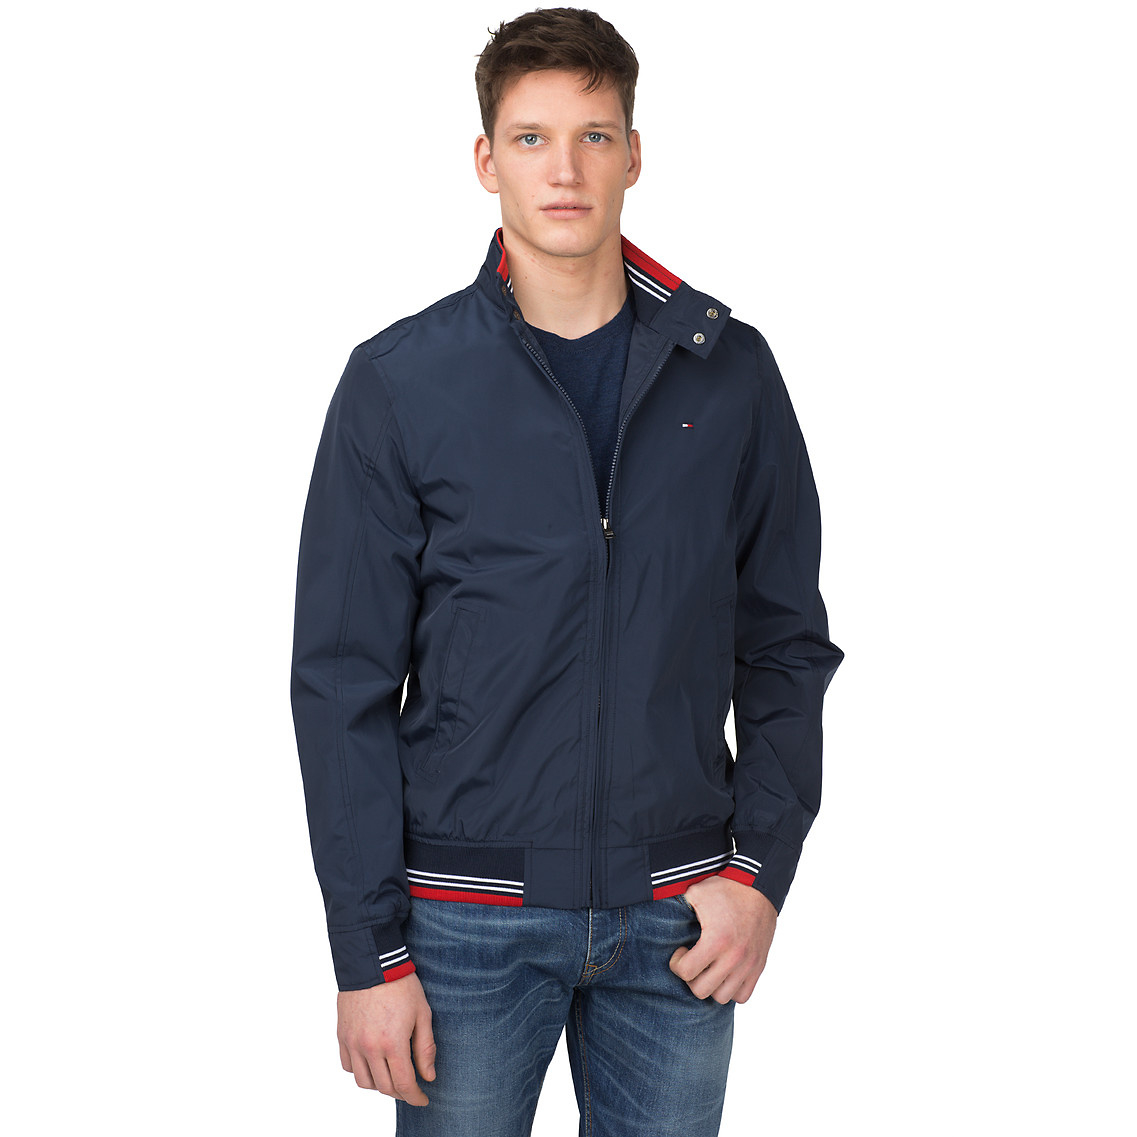 Tommy Hilfiger Chase Bomber Jacket in Blue for Men - Lyst